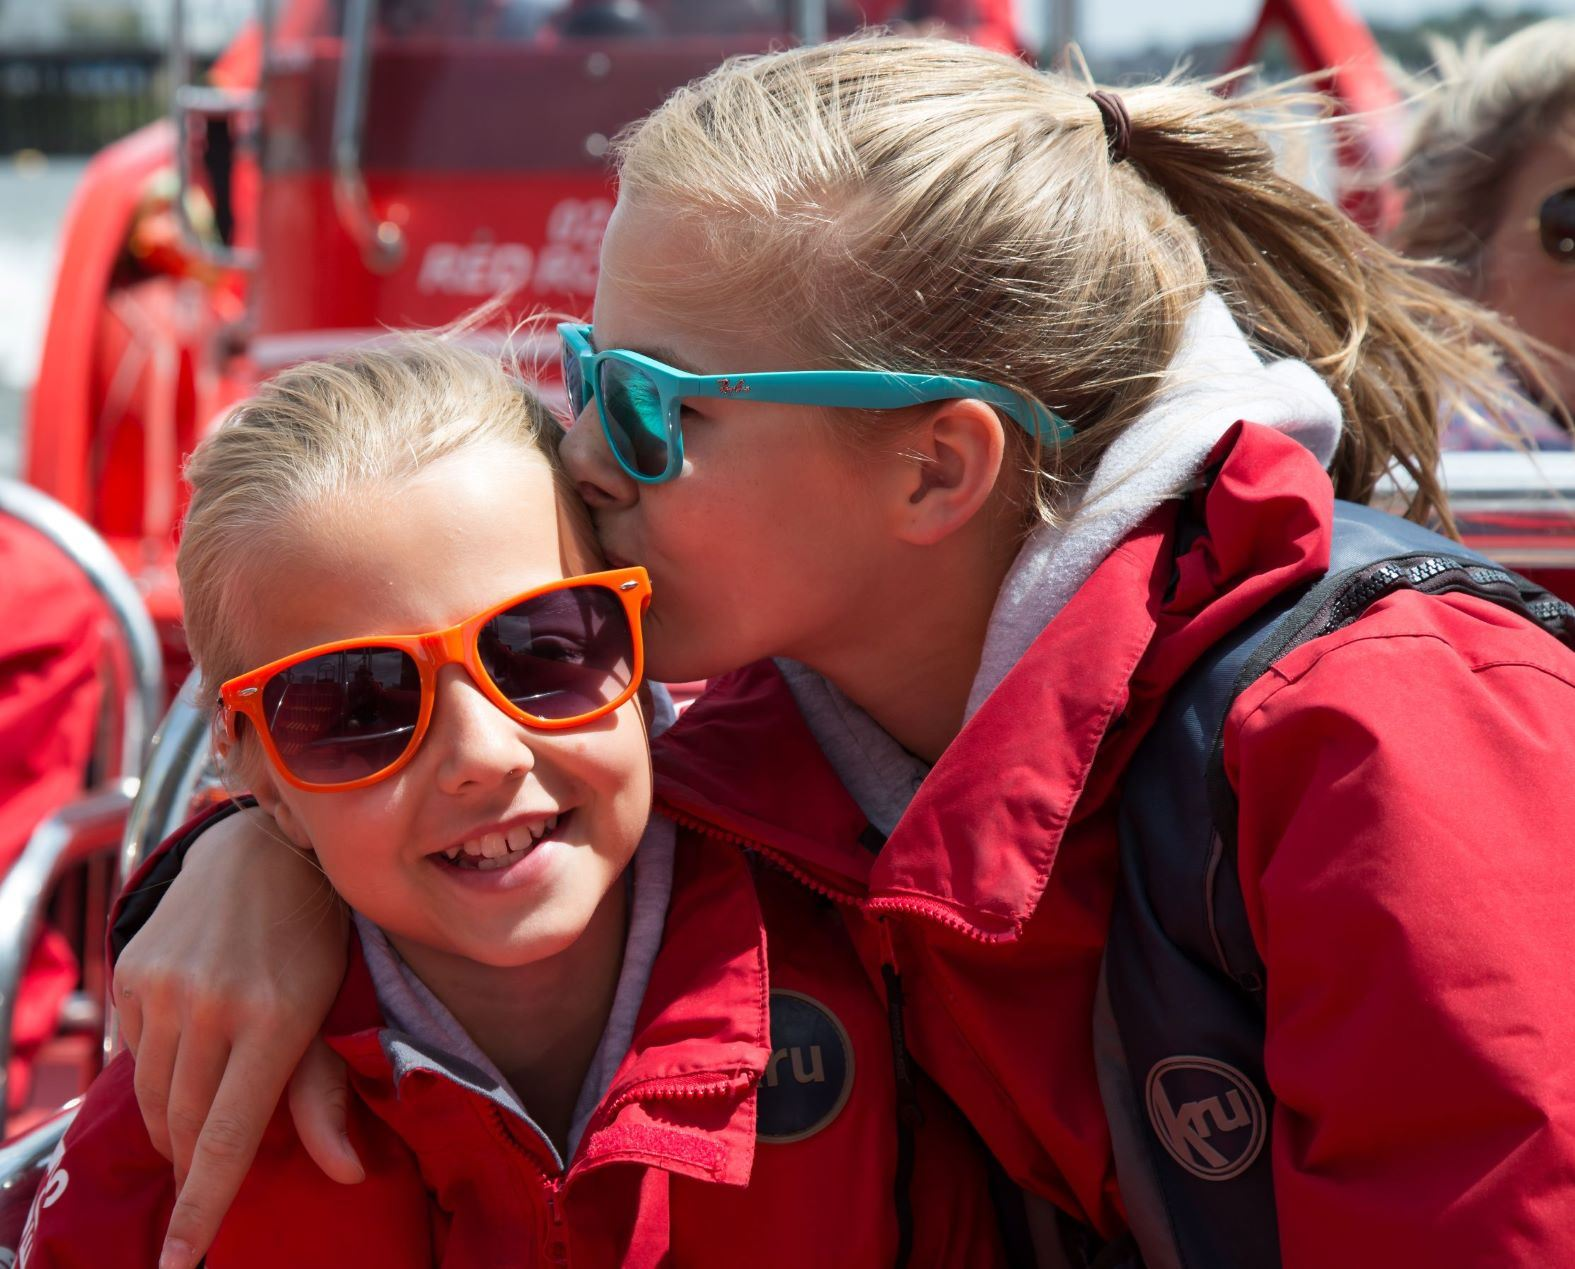 Top 5 Things to Do with the Kids in London This Summer!